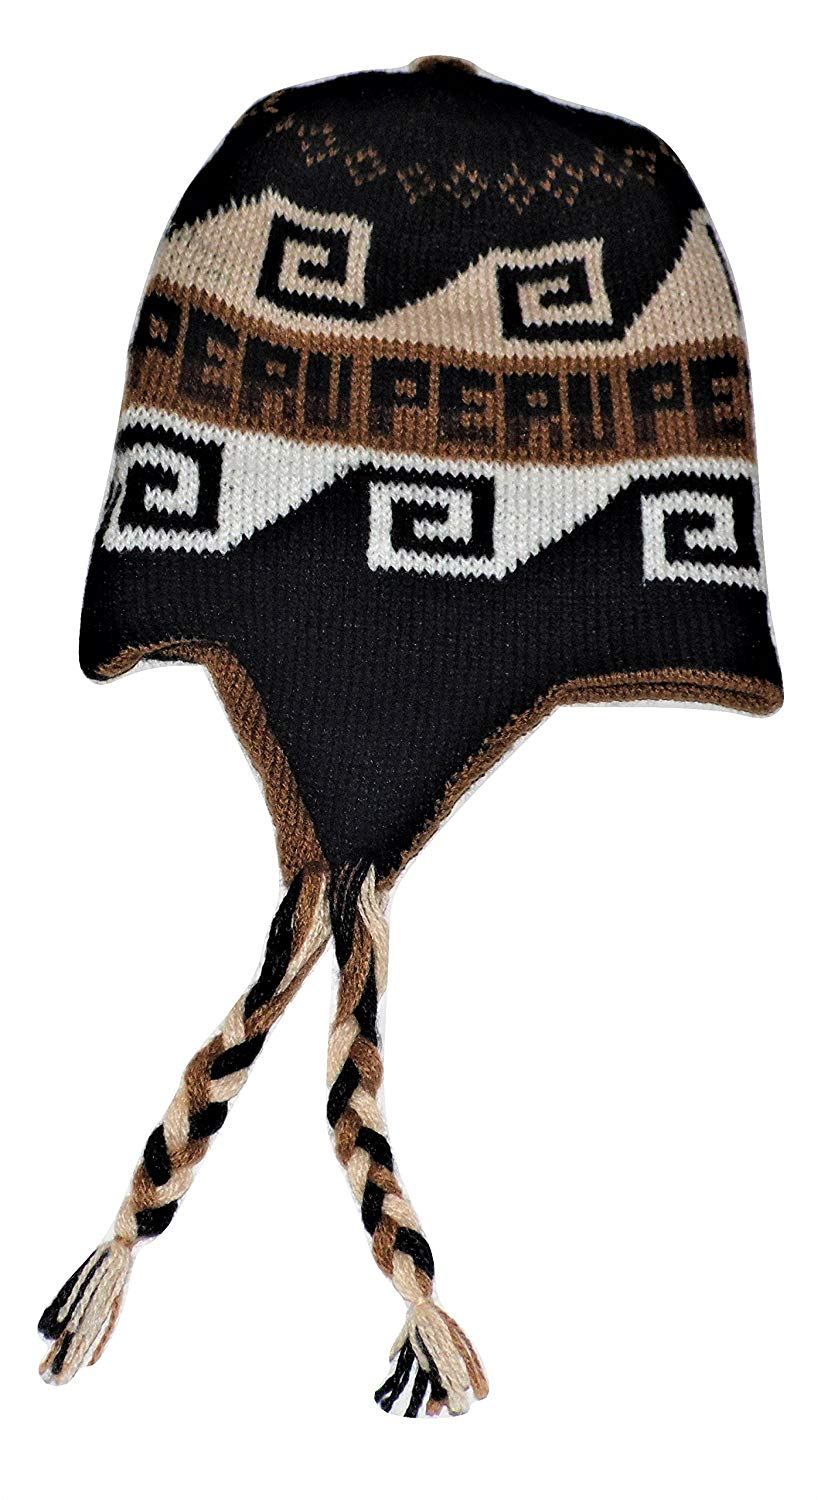 Alpaca Wool Chullo Reversible with Ear Flaps From Peru